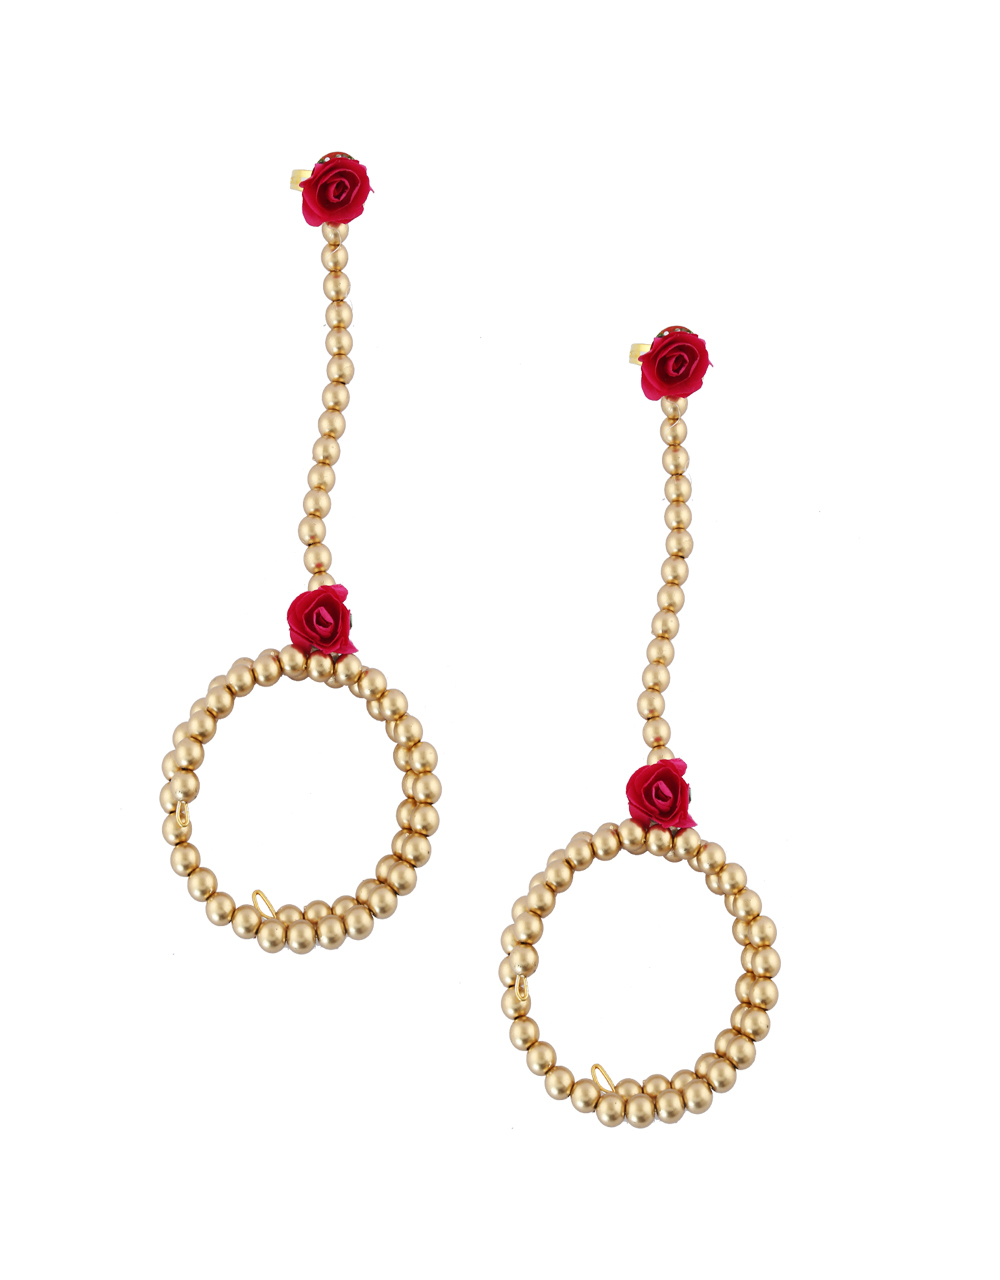 Red Colour Gold Finish Fashionable Floral Jewellery For Wedding